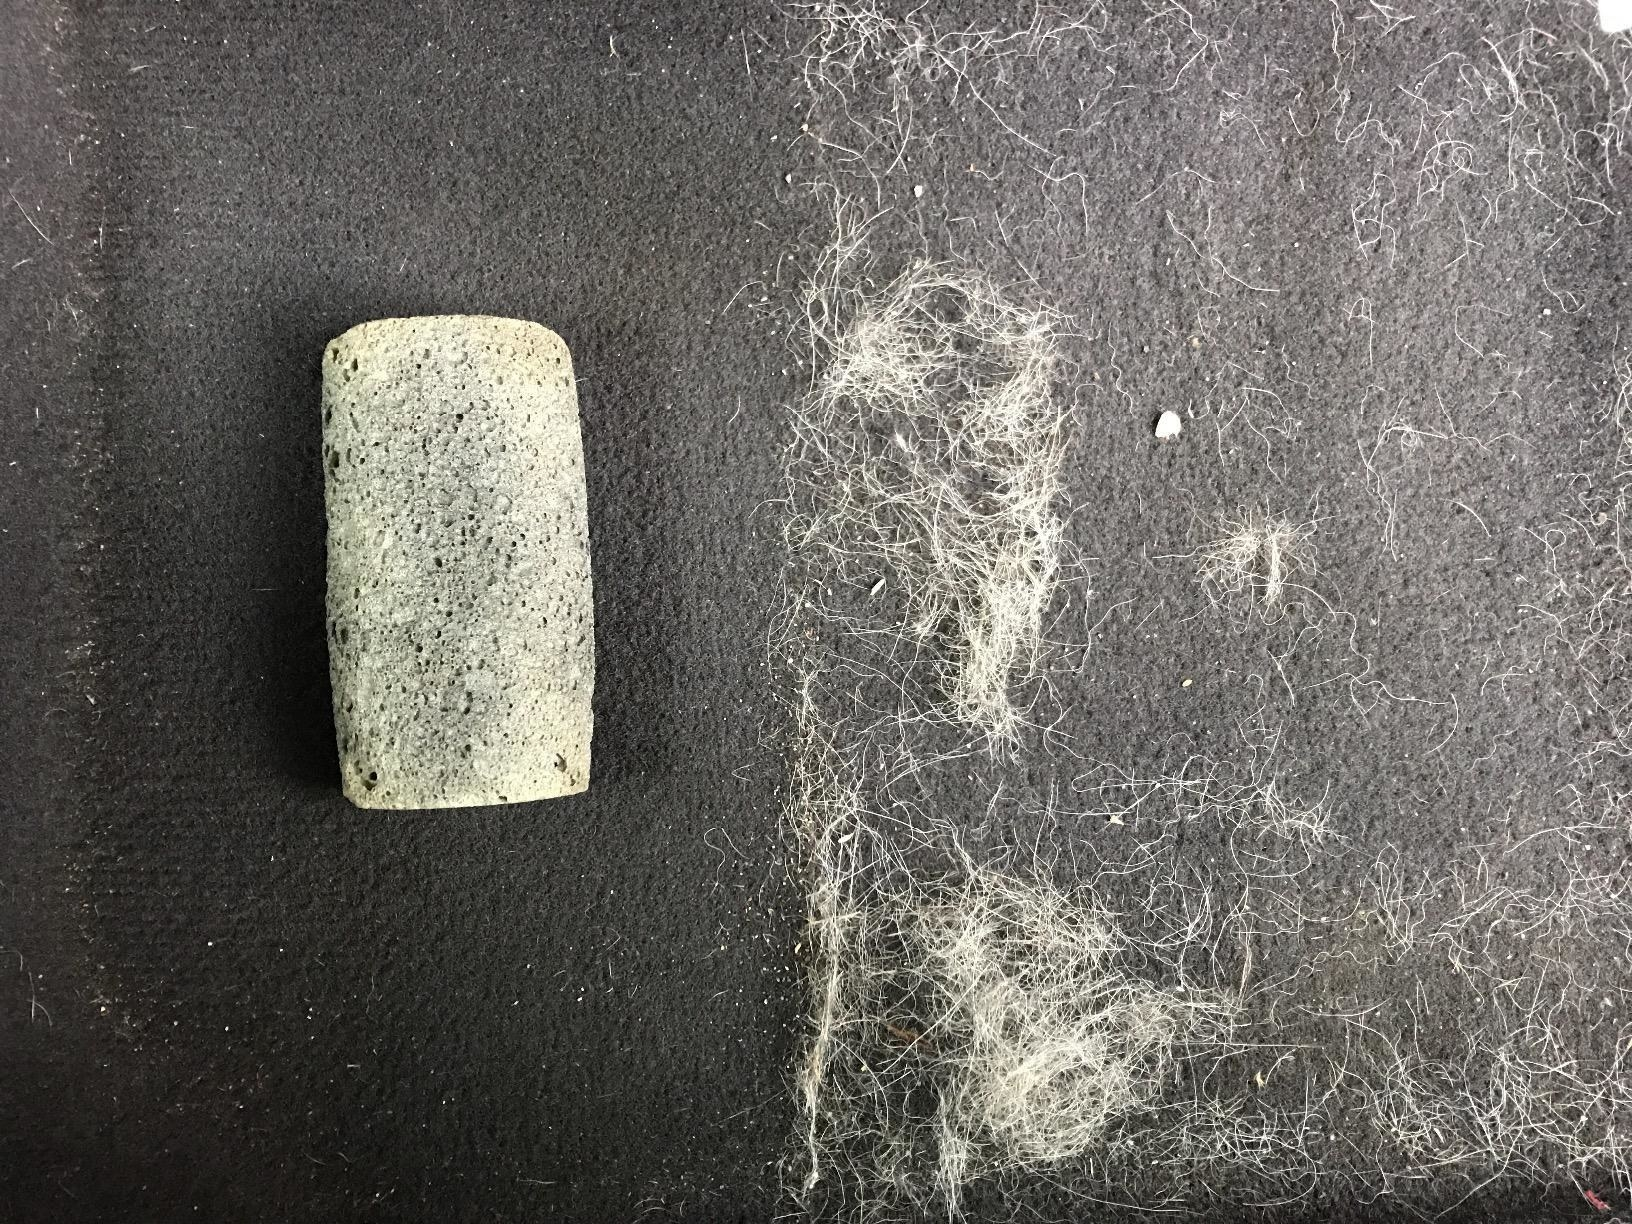 Reviewer photo of the pet hair being almost completely swept off of a carpeted surface